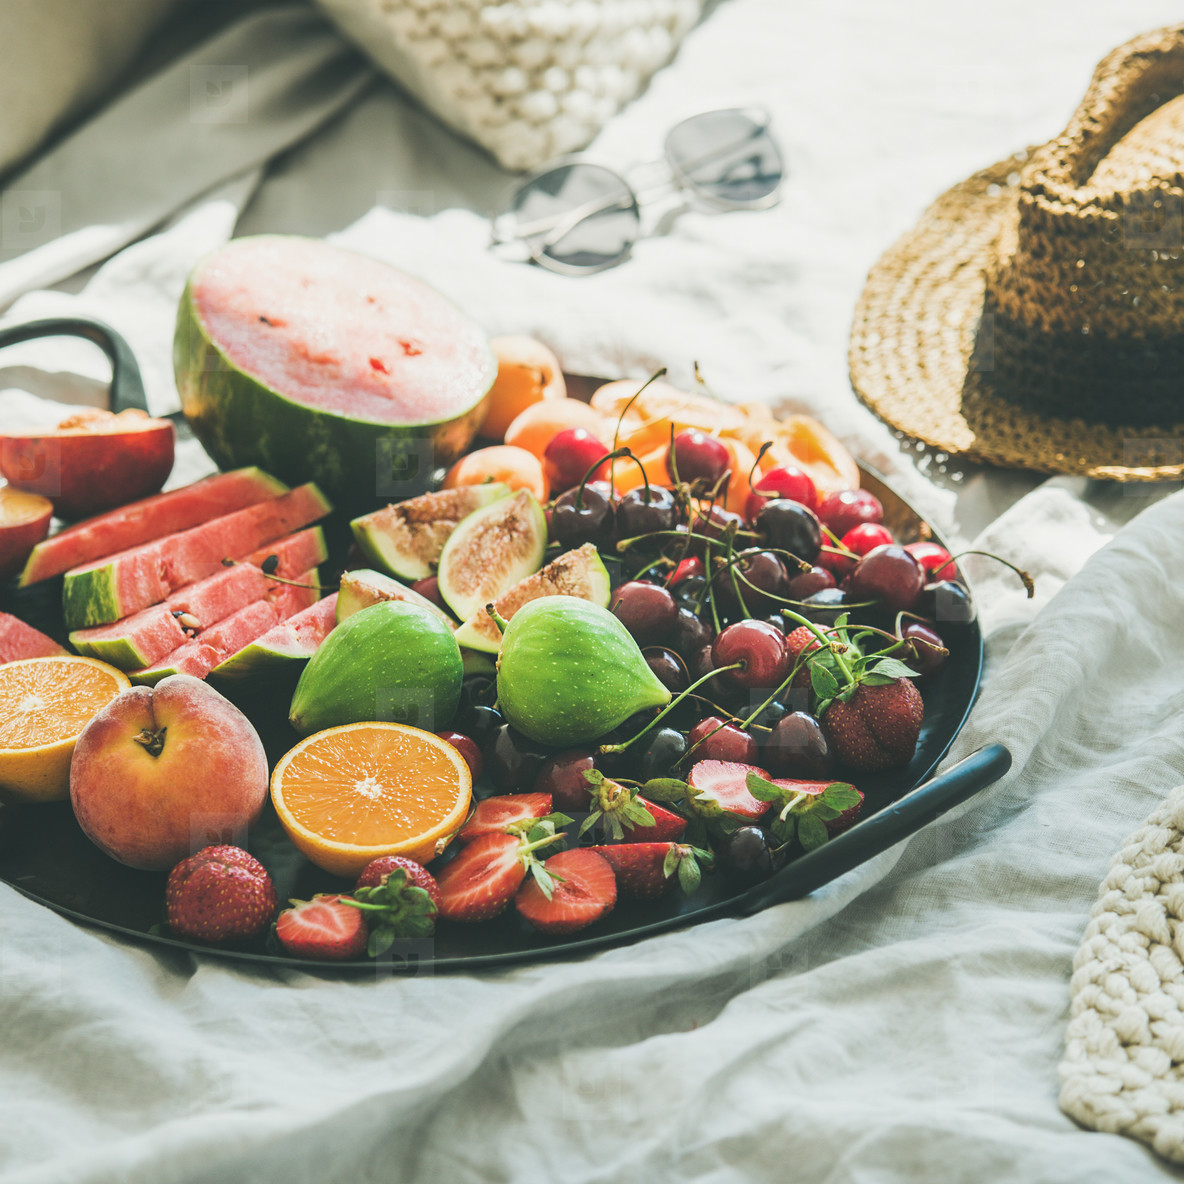 Tray full of fruit over light blanket background  square crop